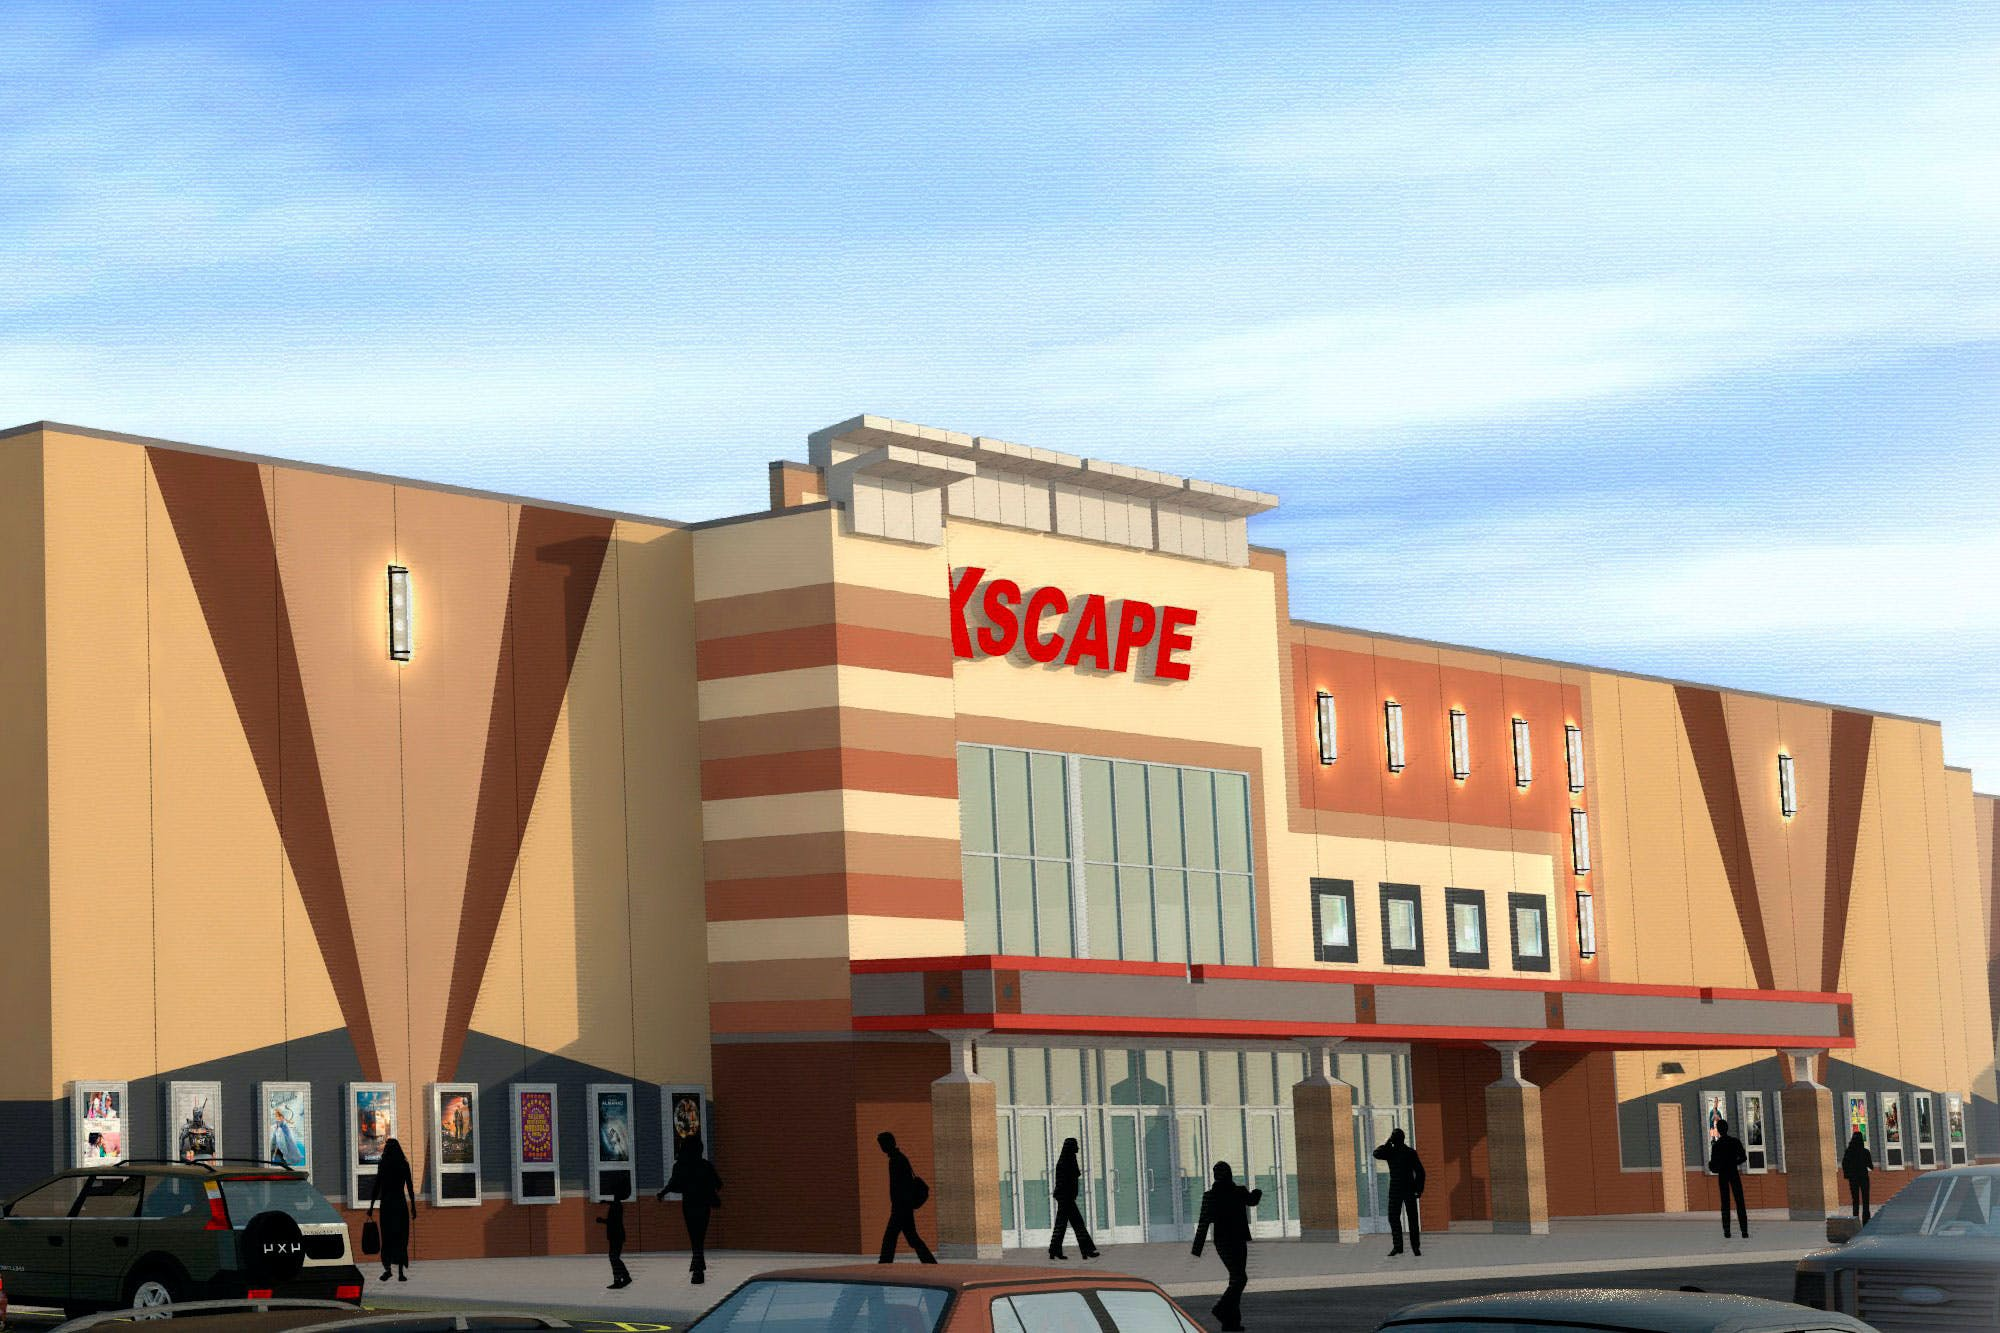 xscape-theater-to-open-in-katy-tx-fulshear-area